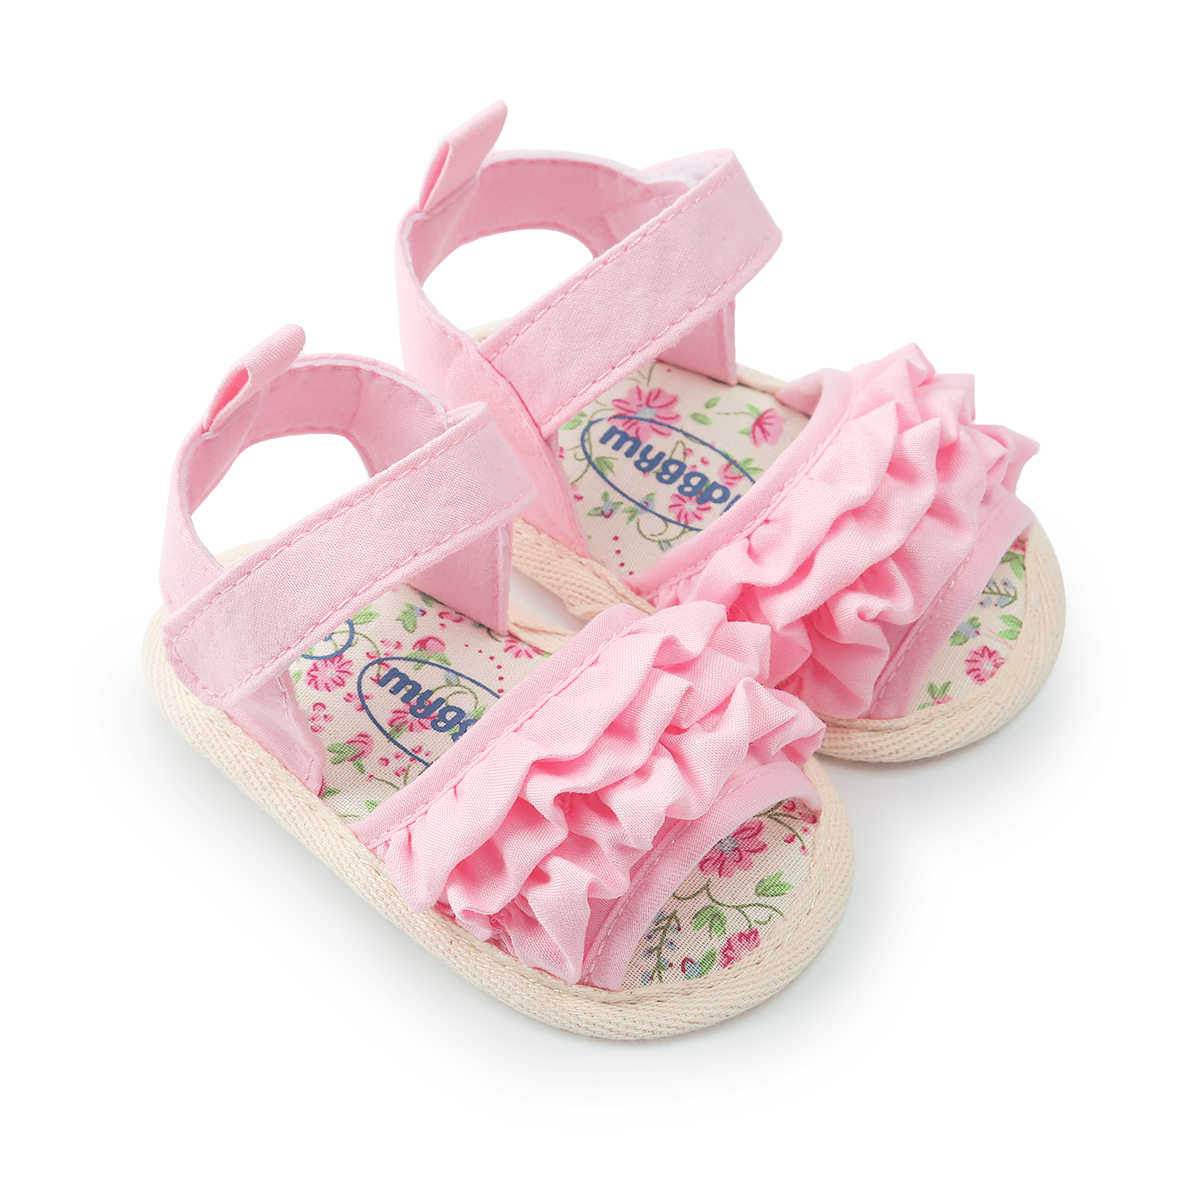 2018 Emmababy Baby Girl Shoes Flower baby Toddler Princess  Shoes Anti-slip Sneaker  Girls Kid Baby Summer Sandals